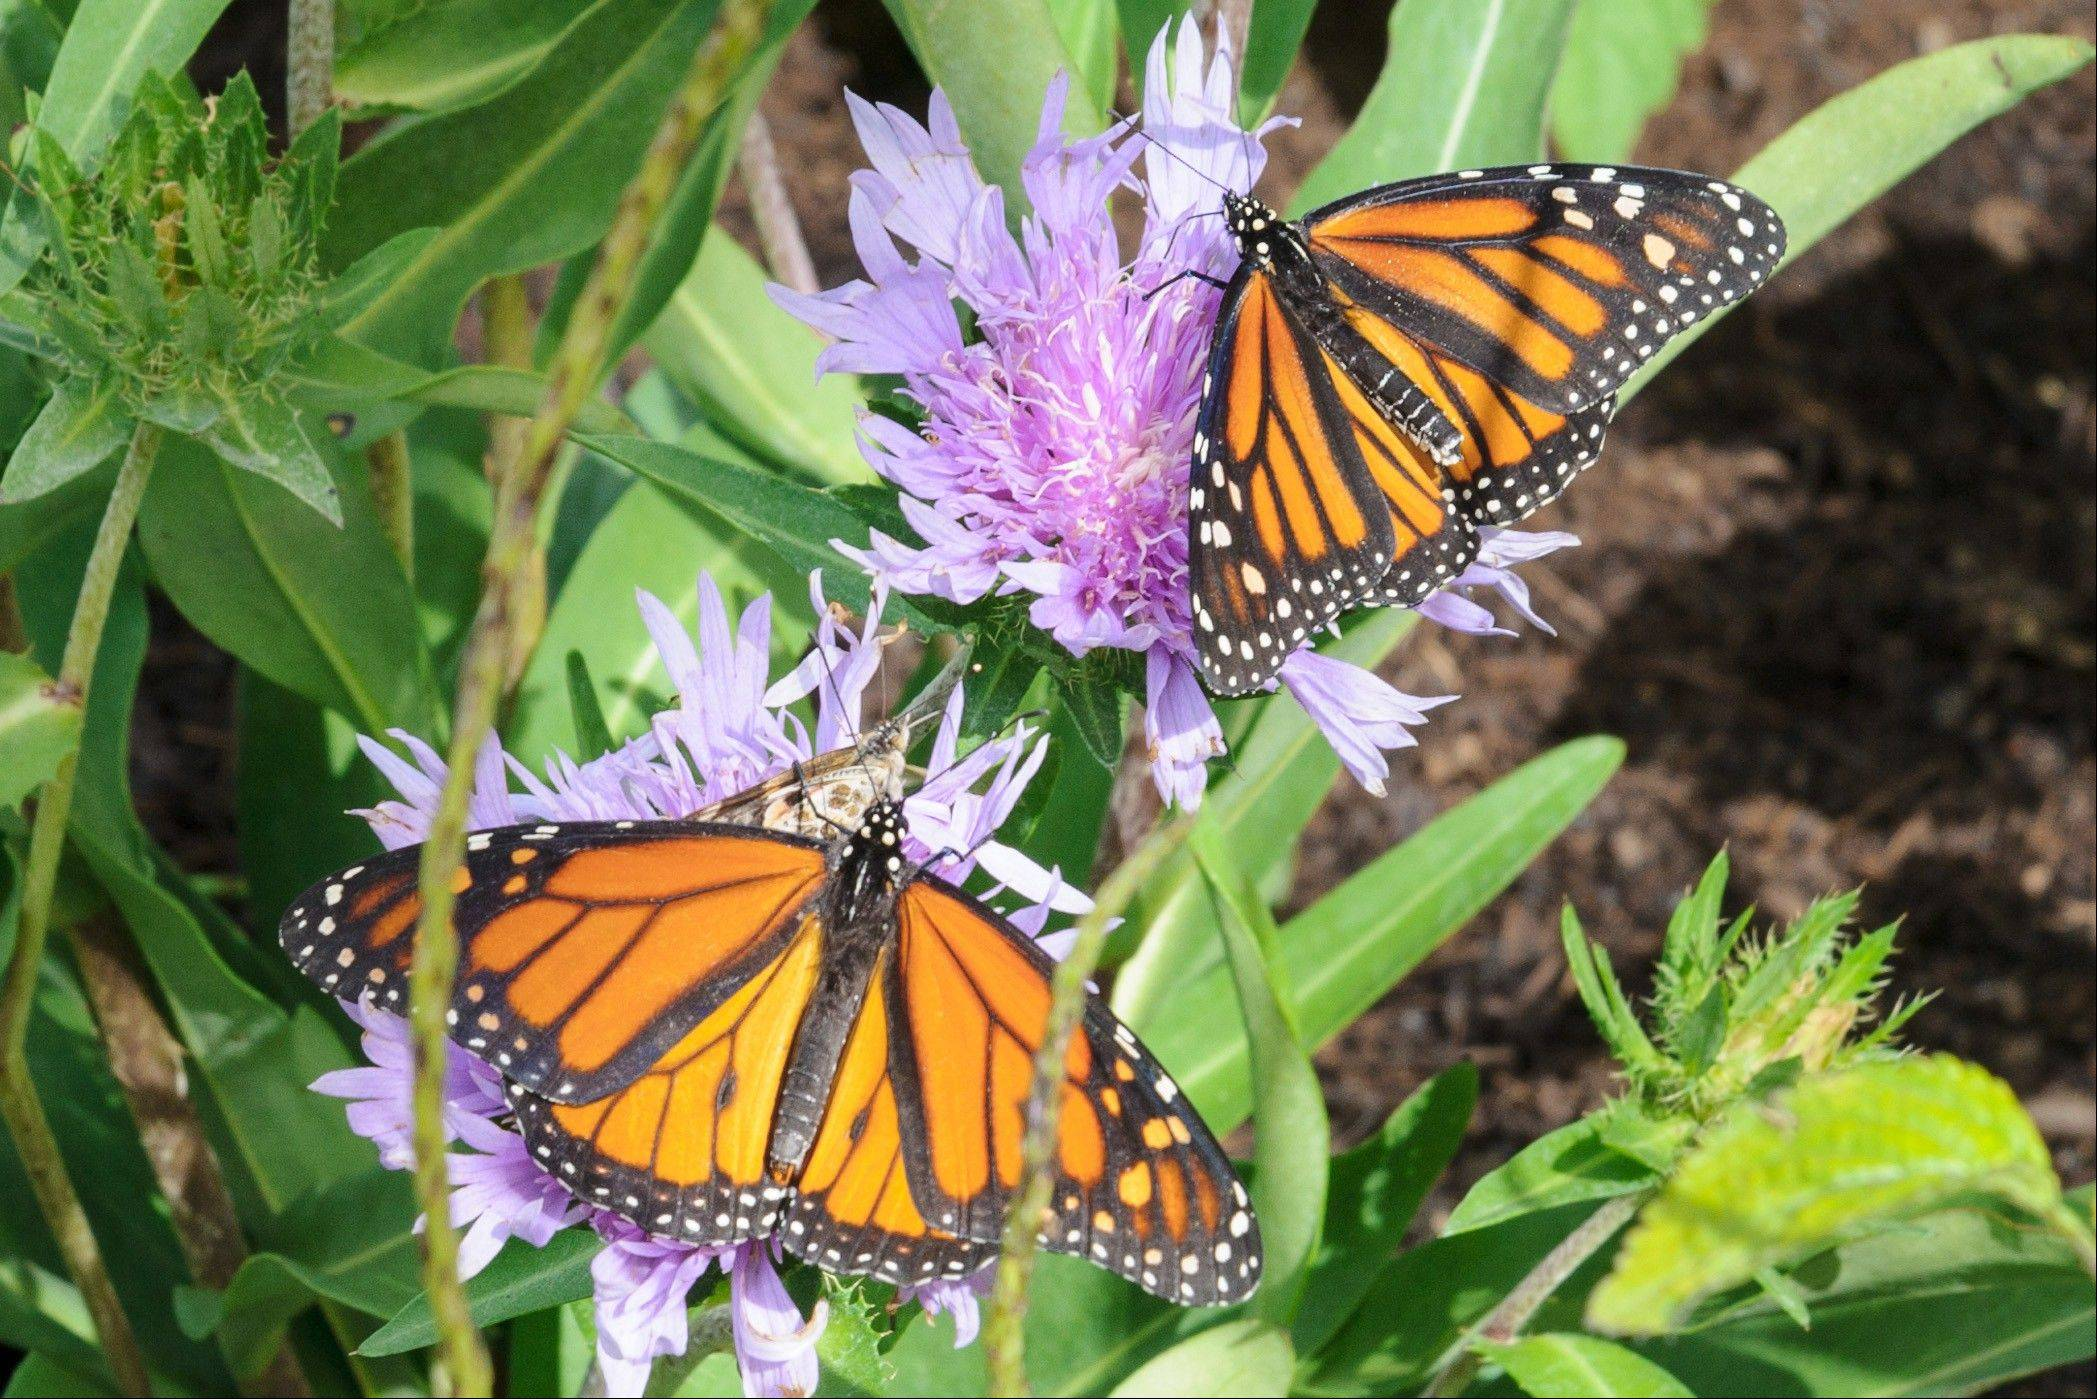 The special Butterflies & Blooms area of the Chicago Botanic Garden returns to Glencoe starting Saturday, May 25.